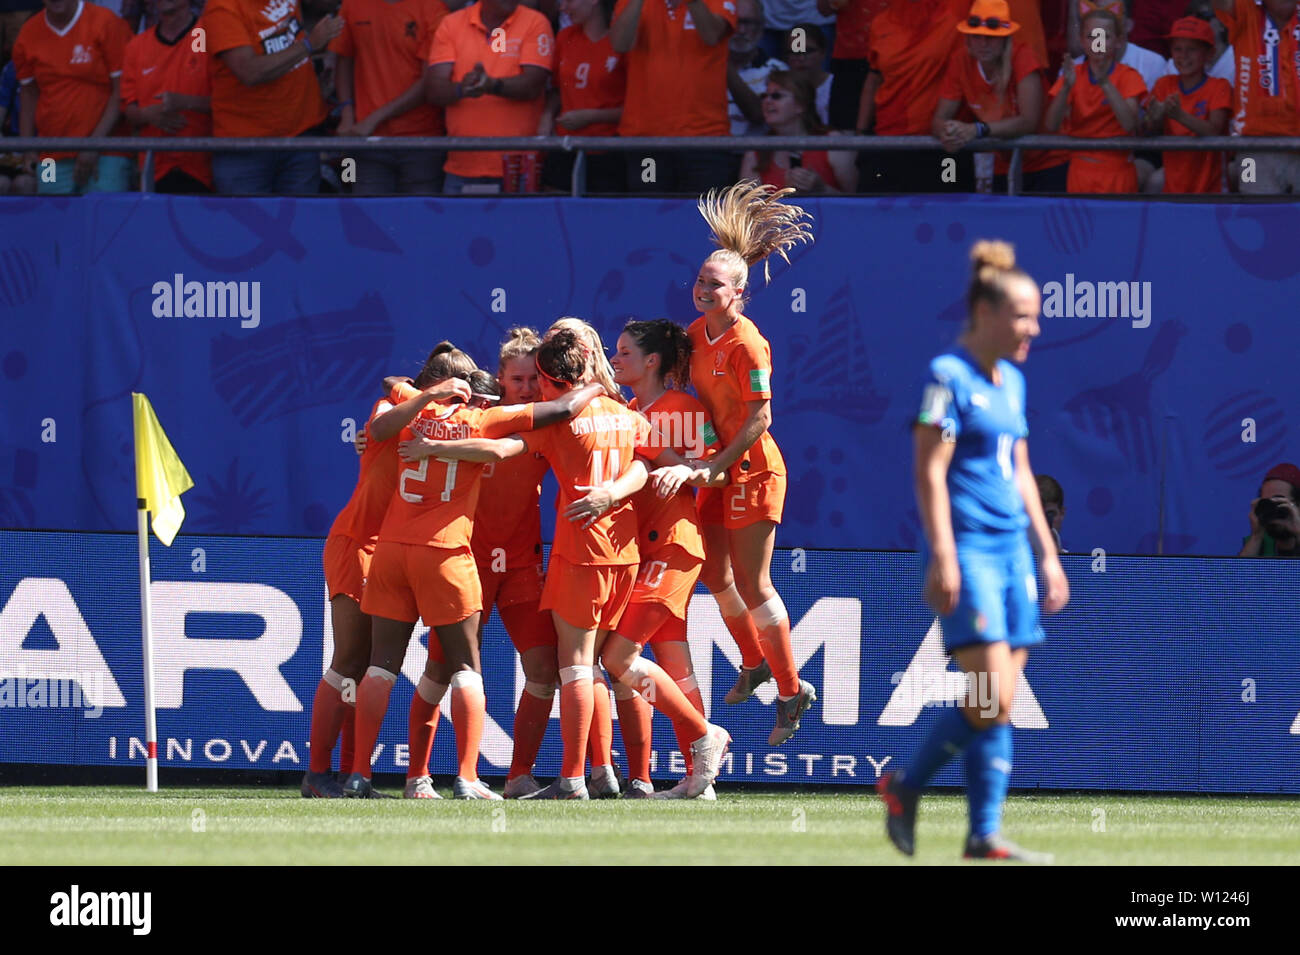 Valenciennes, France. 29th June, 2019. Players of the Netherlands celebrate their goal during the quarterfinal between Italy and the Netherlands at the 2019 FIFA Women's World Cup in Valenciennes, France, June 29, 2019. Credit: Zheng Huansong/Xinhua/Alamy Live News Stock Photo